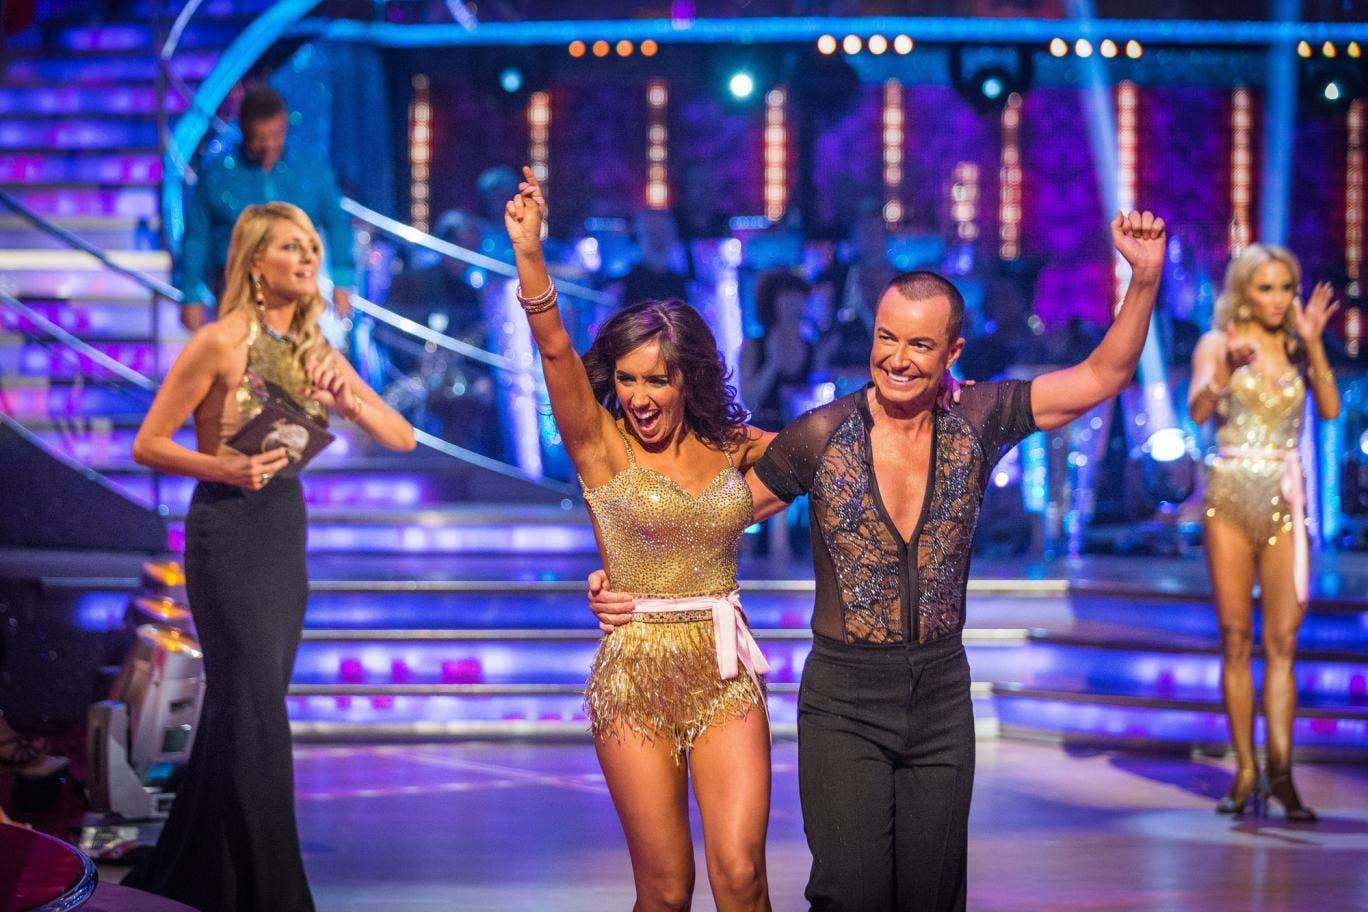 Julien Macdonald and professional dance partner Janette Manrara appearing on Strictly Come Dancing